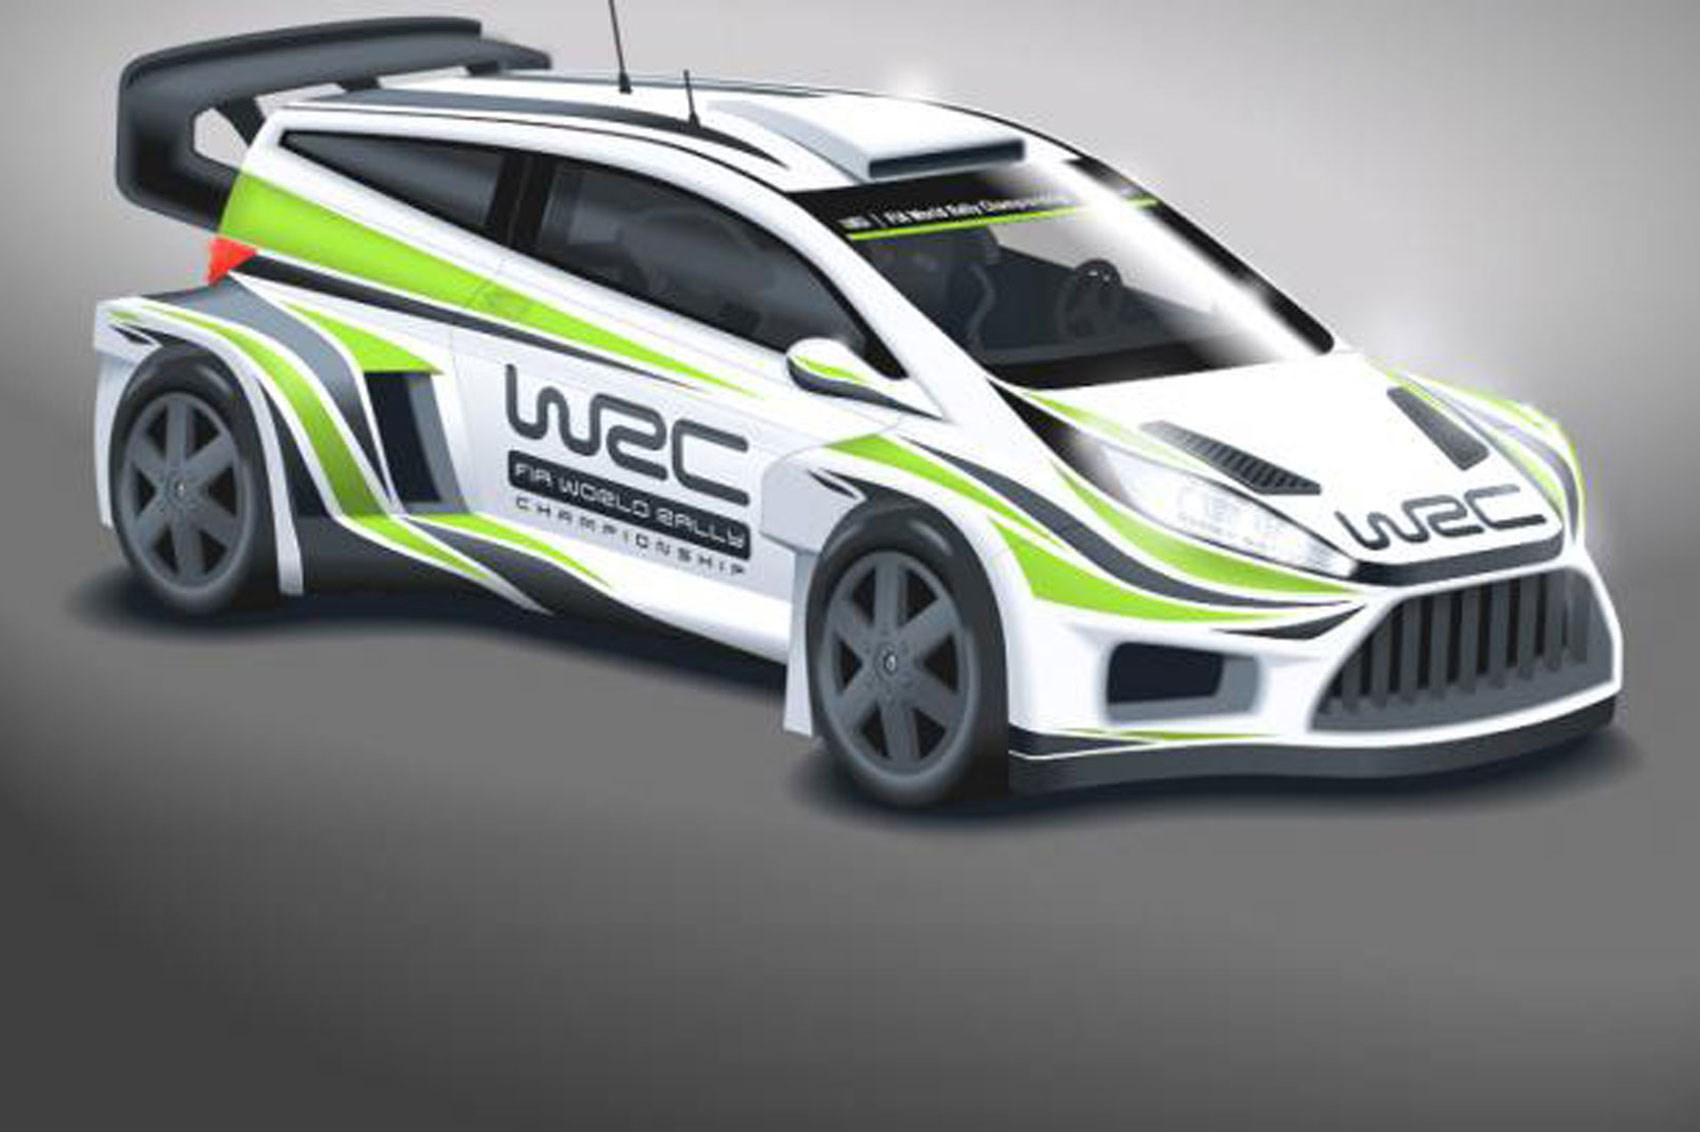 Ultrablogus  Pretty Wild New Look For Wrc Cars In  By Car Magazine With Lovely Wrc Cars Will Get Wider Bodies Bigger Wings And More Power For  With Cute Truck Interior Curtains Also Steampunk Interior Design In Addition Honda Car Interior Accessories And Vip Car Interior Design As Well As Interior Shots Additionally Can Am Maverick Interior From Carmagazinecouk With Ultrablogus  Lovely Wild New Look For Wrc Cars In  By Car Magazine With Cute Wrc Cars Will Get Wider Bodies Bigger Wings And More Power For  And Pretty Truck Interior Curtains Also Steampunk Interior Design In Addition Honda Car Interior Accessories From Carmagazinecouk